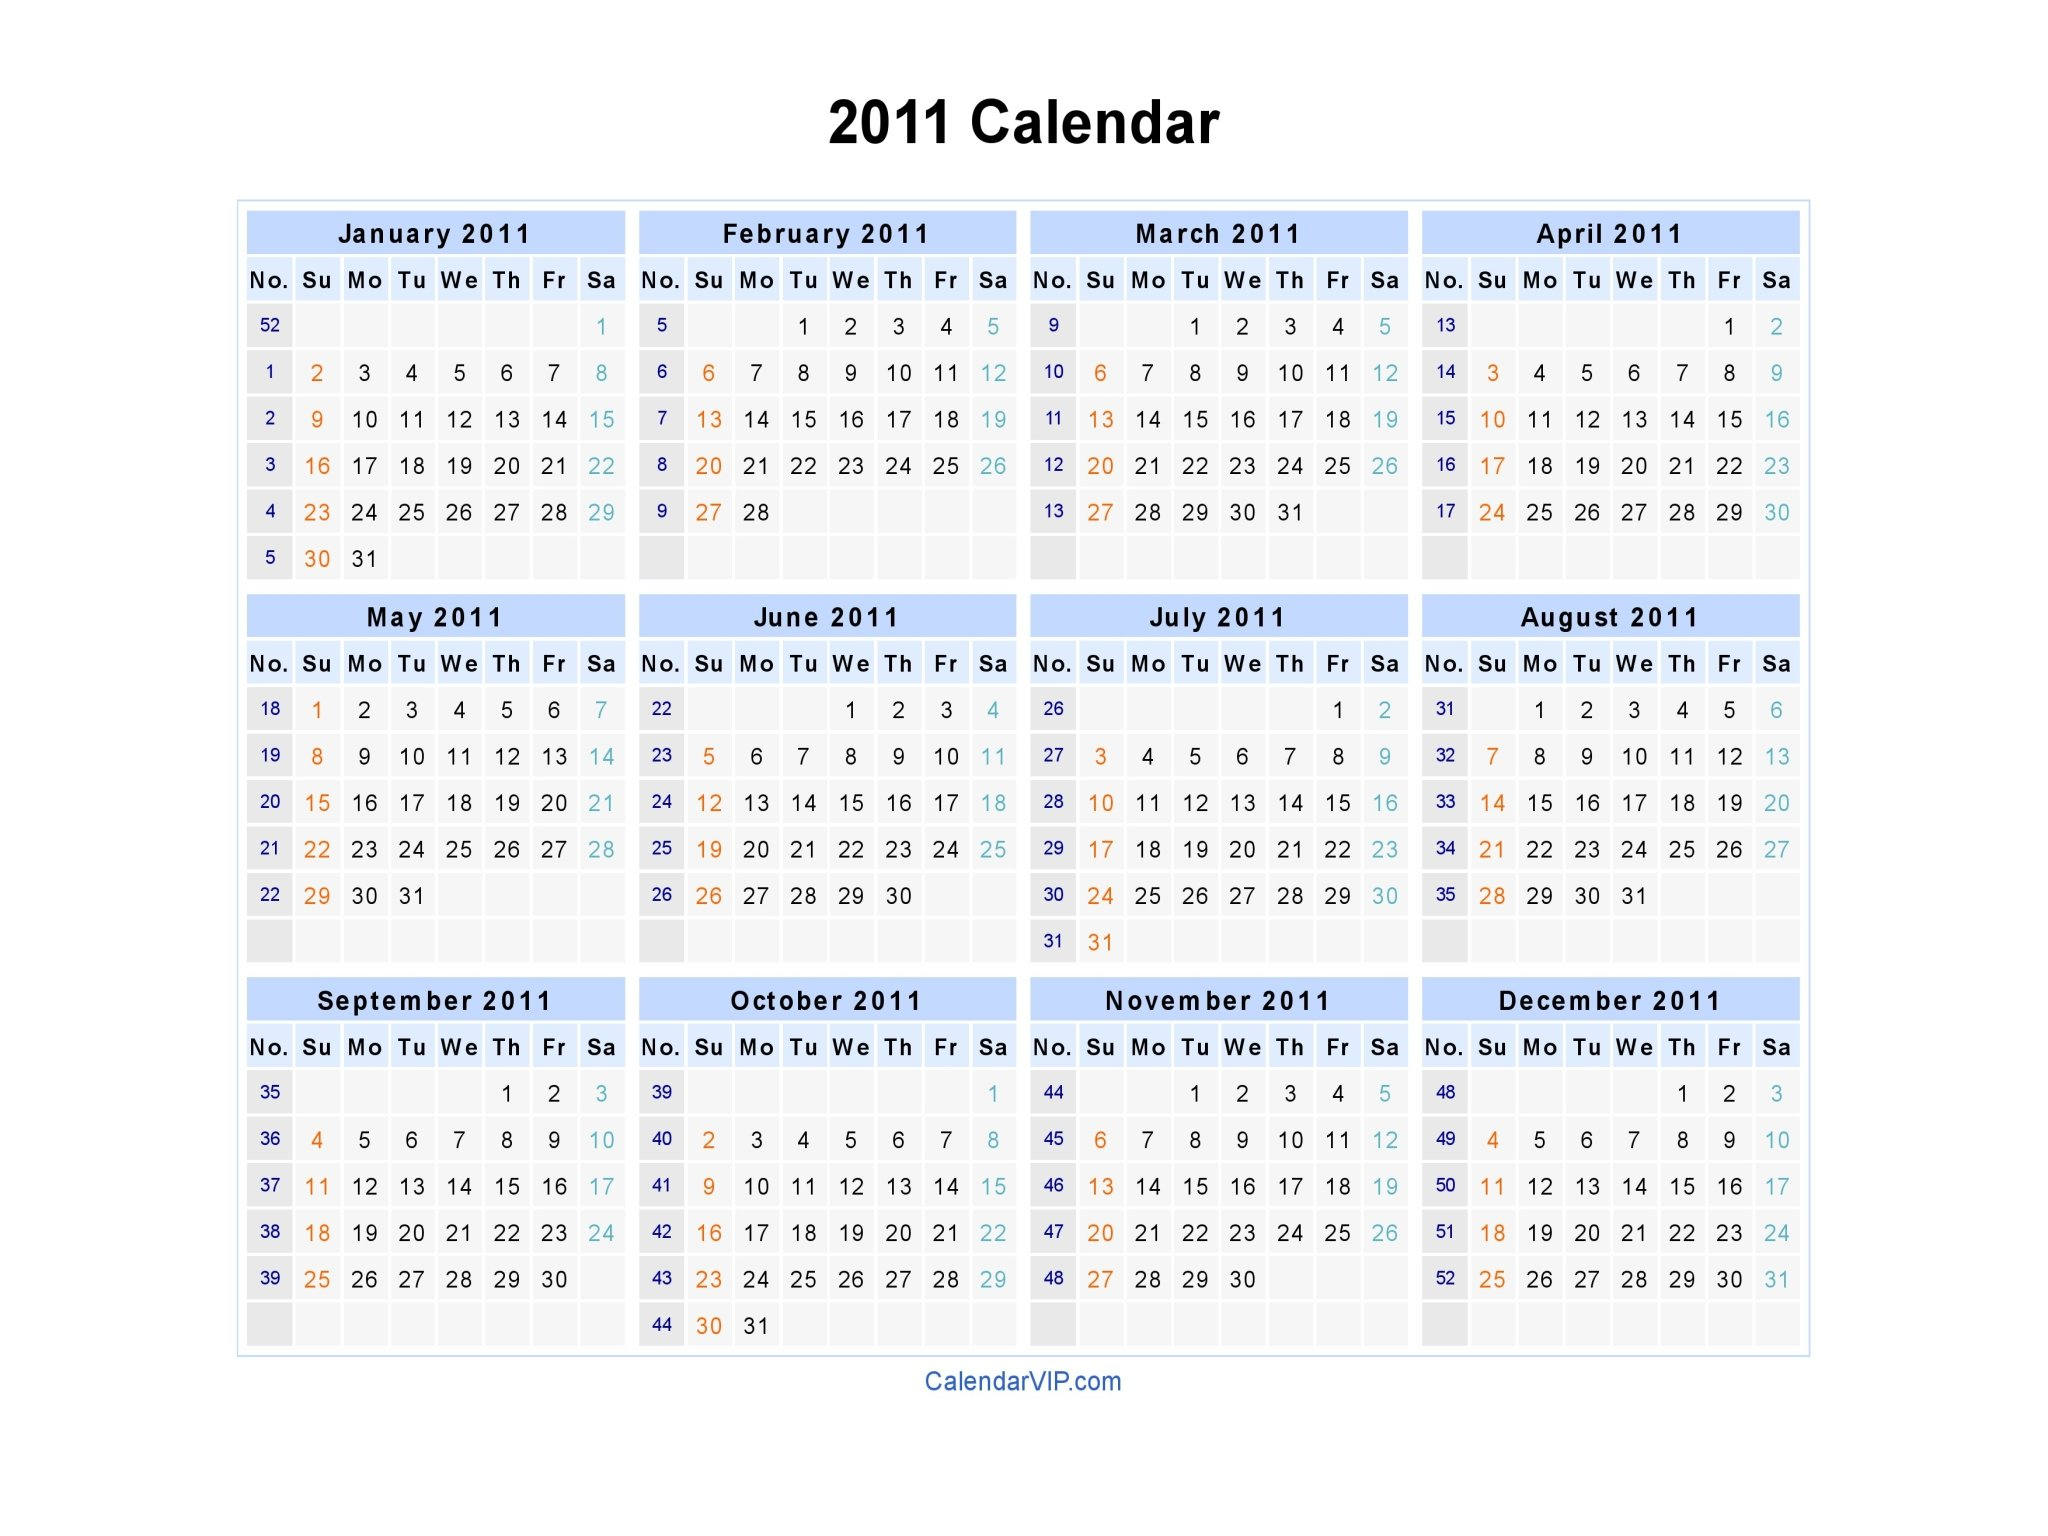 2011 Calendar - Blank Printable Calendar Template In Pdf 52 Week Numbered Calendar